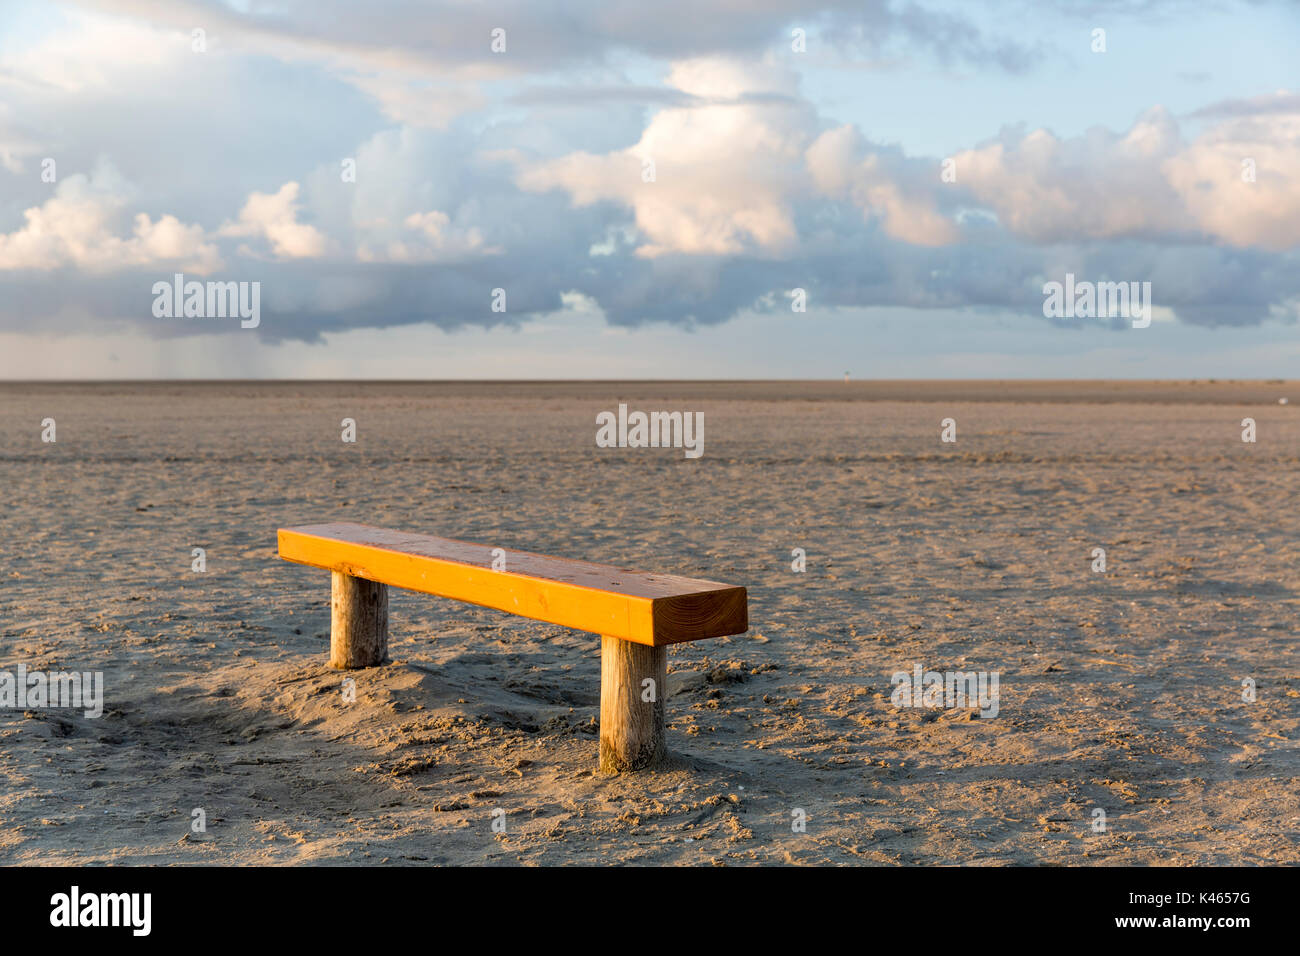 Lone bench on the beach - Stock Image